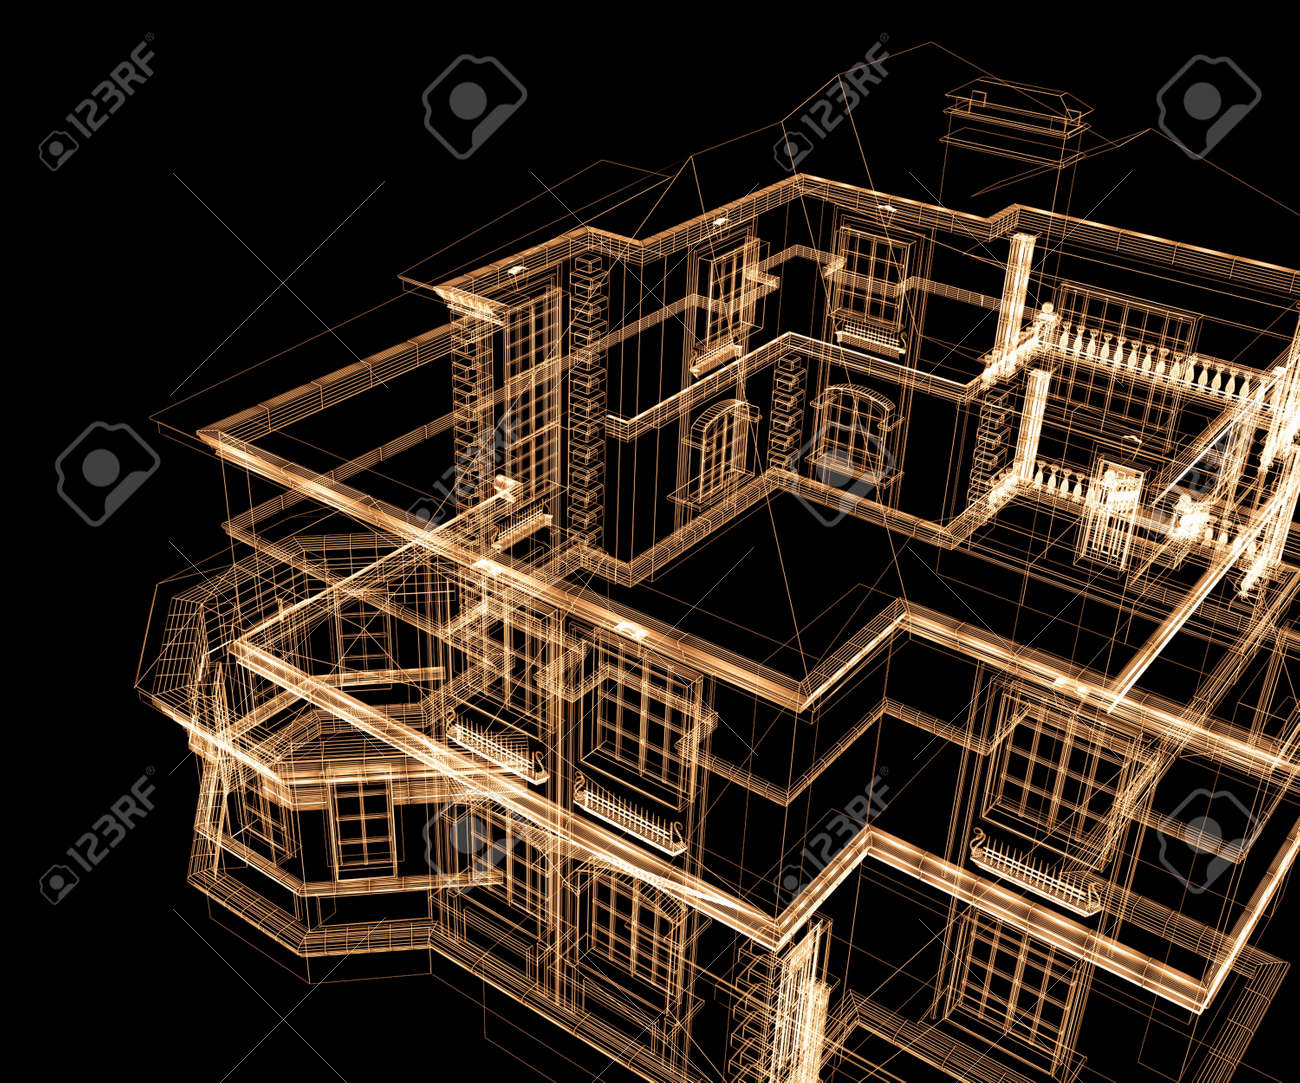 Modern Architecture Drawing 3d modern architecture on a black background stock photo, picture